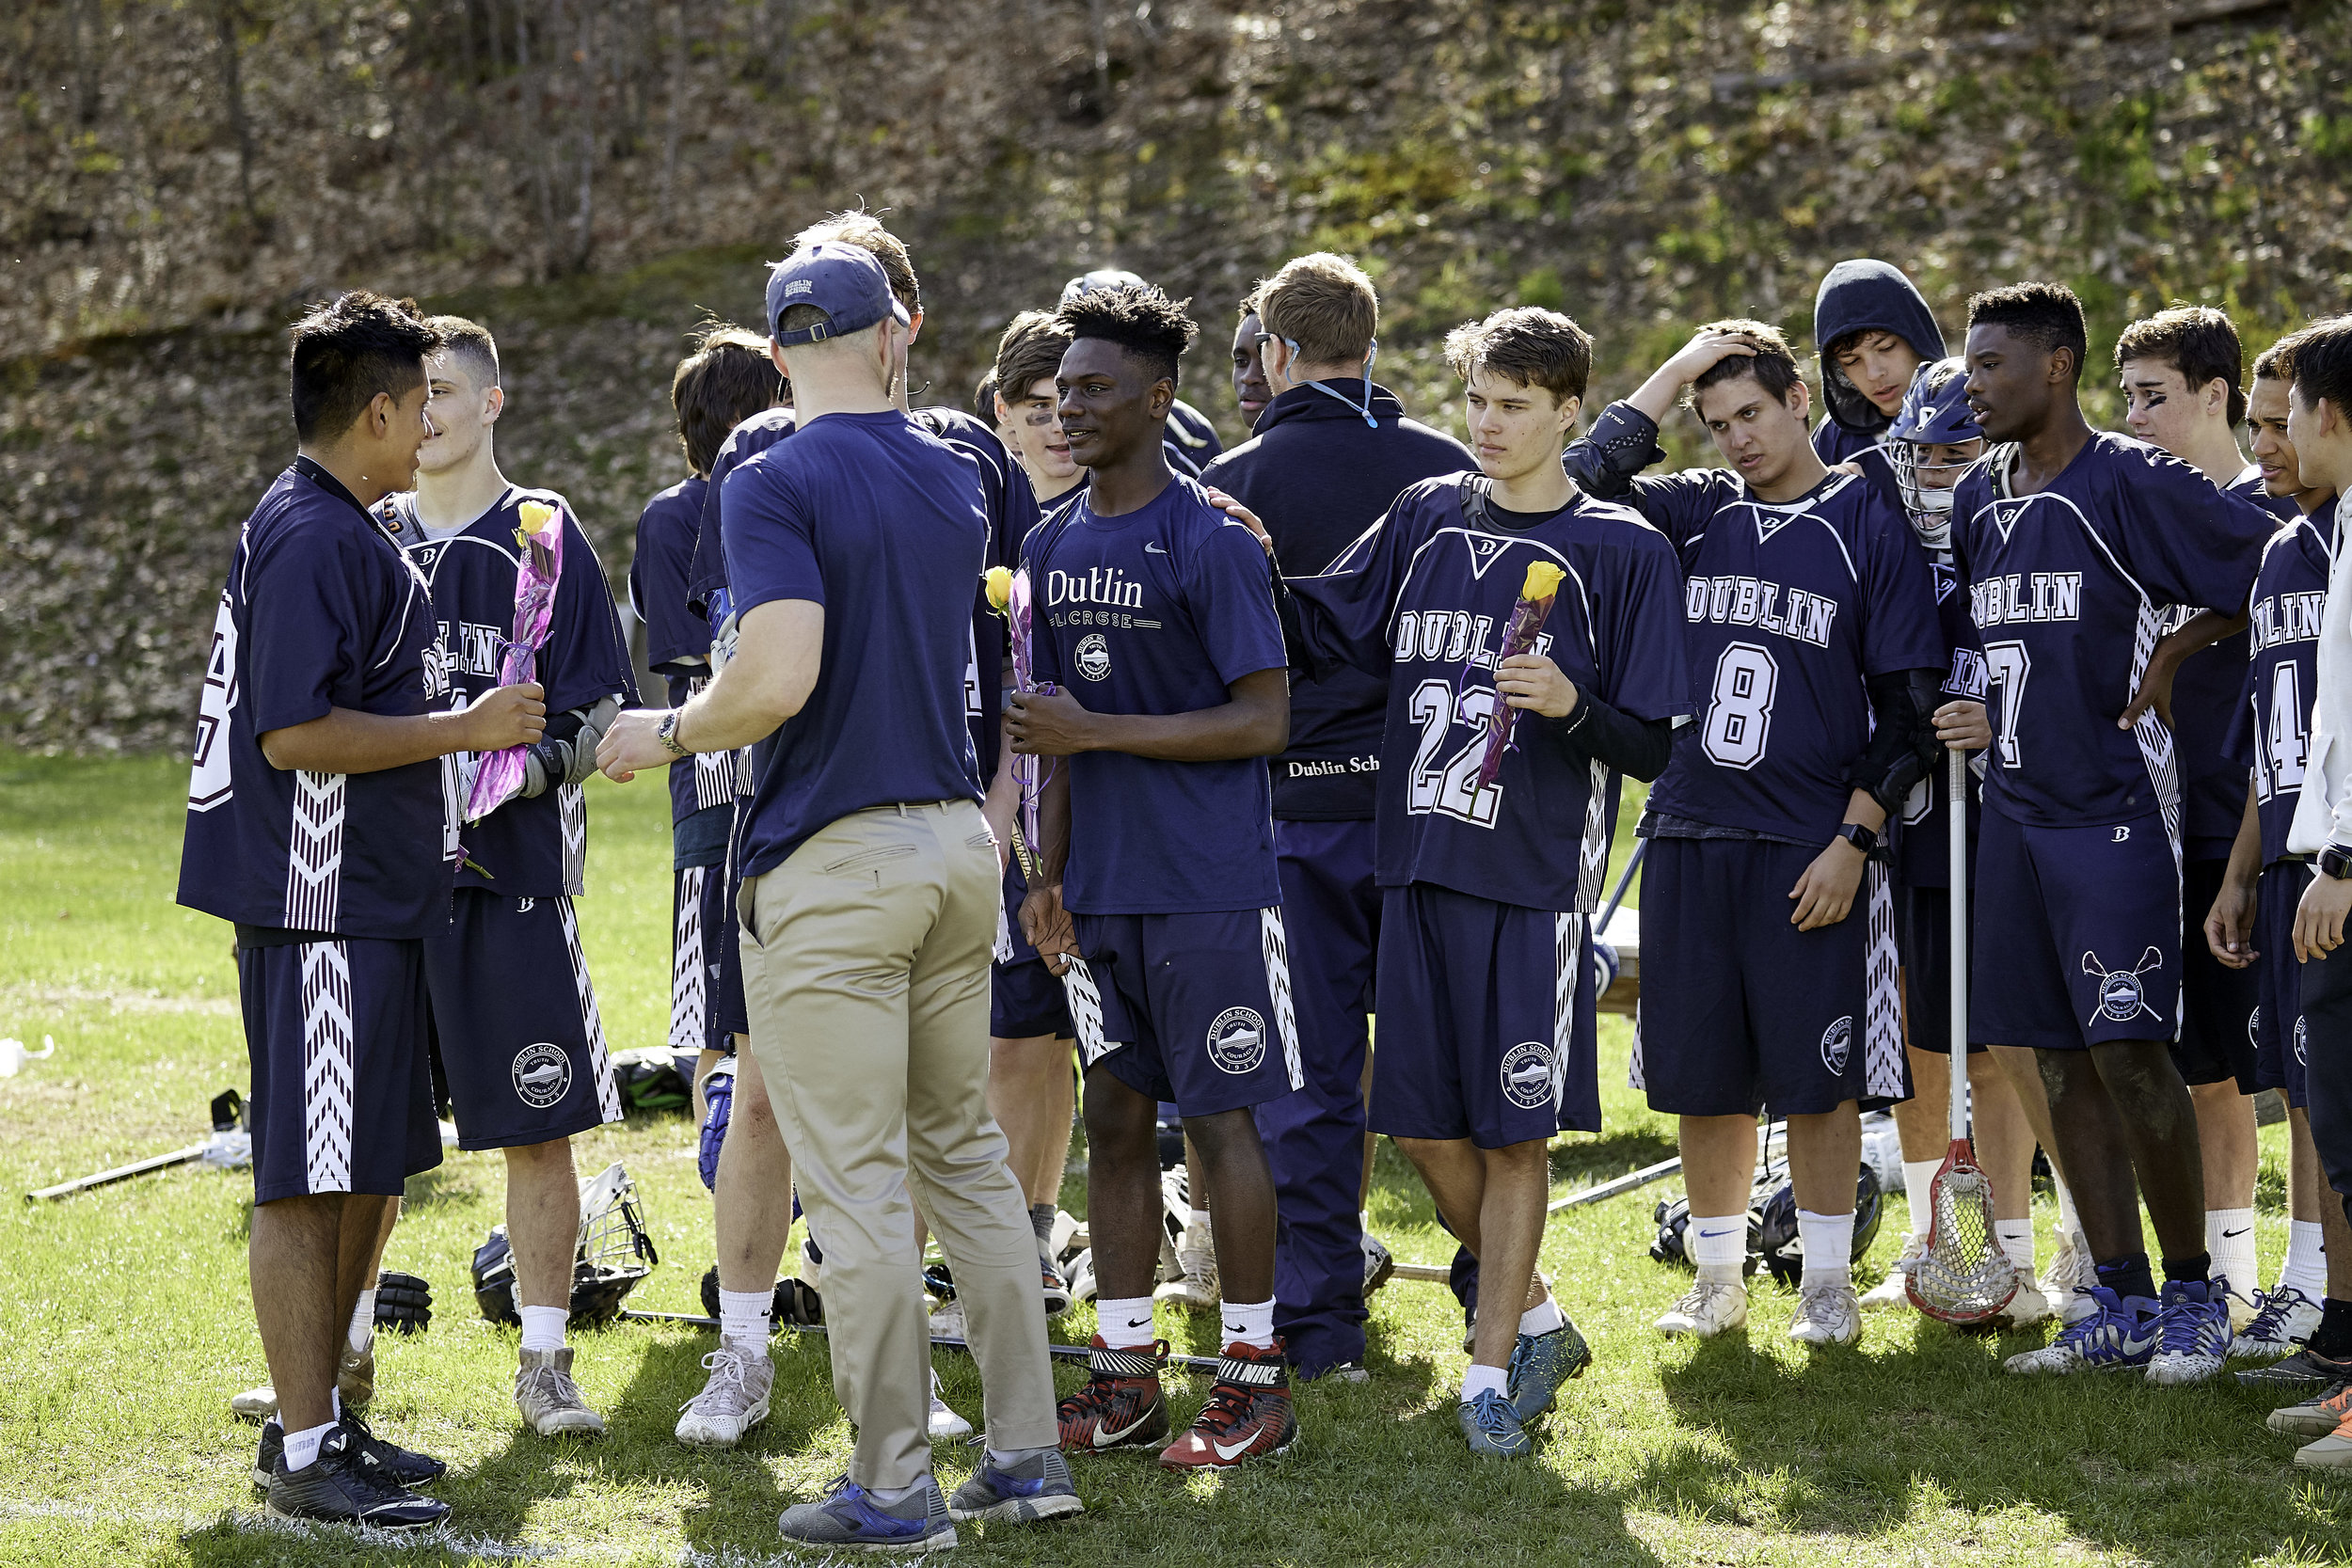 Boys Lax vs Northfield Mount Hermon JV - May 15 2019 - 0075.jpg